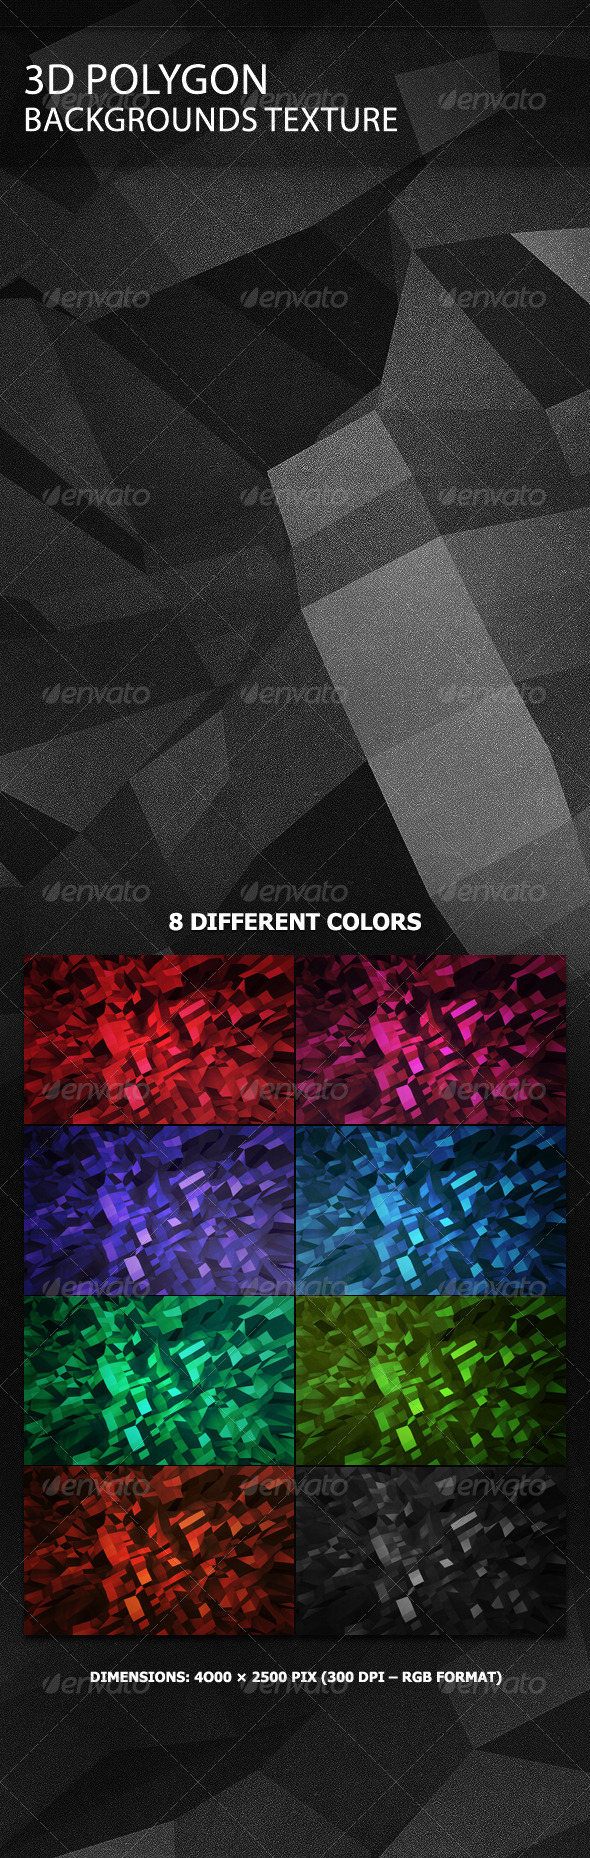 3D Polygon Backgrounds Texture - Abstract Backgrounds